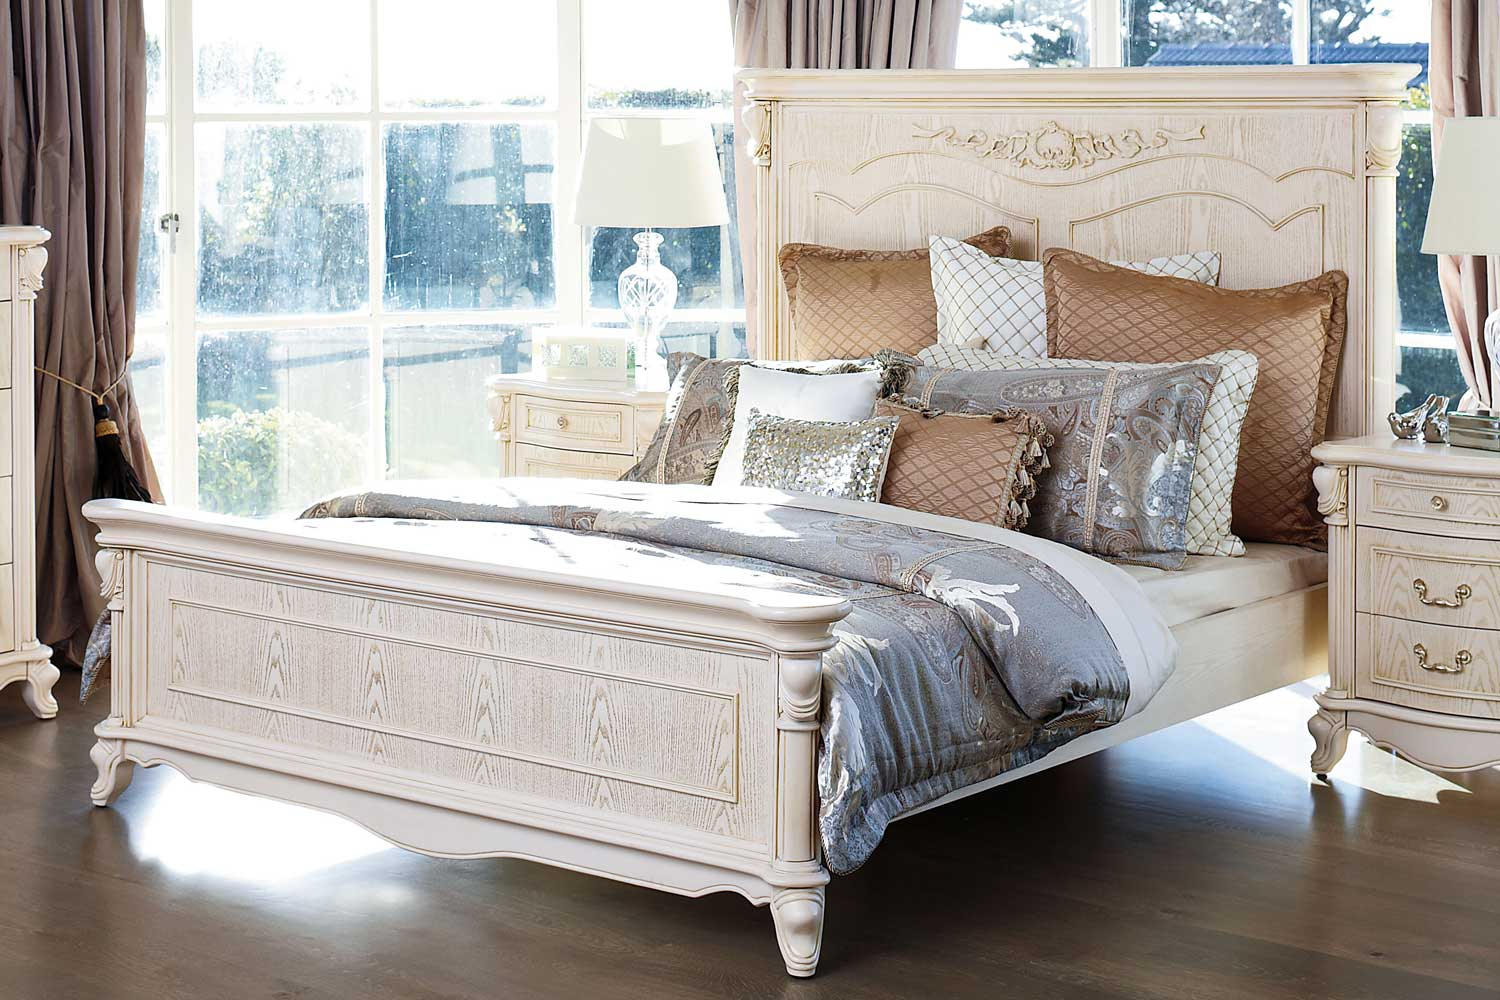 Chateau king bed frame by sorensen furniture harvey norman new zealand - Harvey norman bedroom sets ...